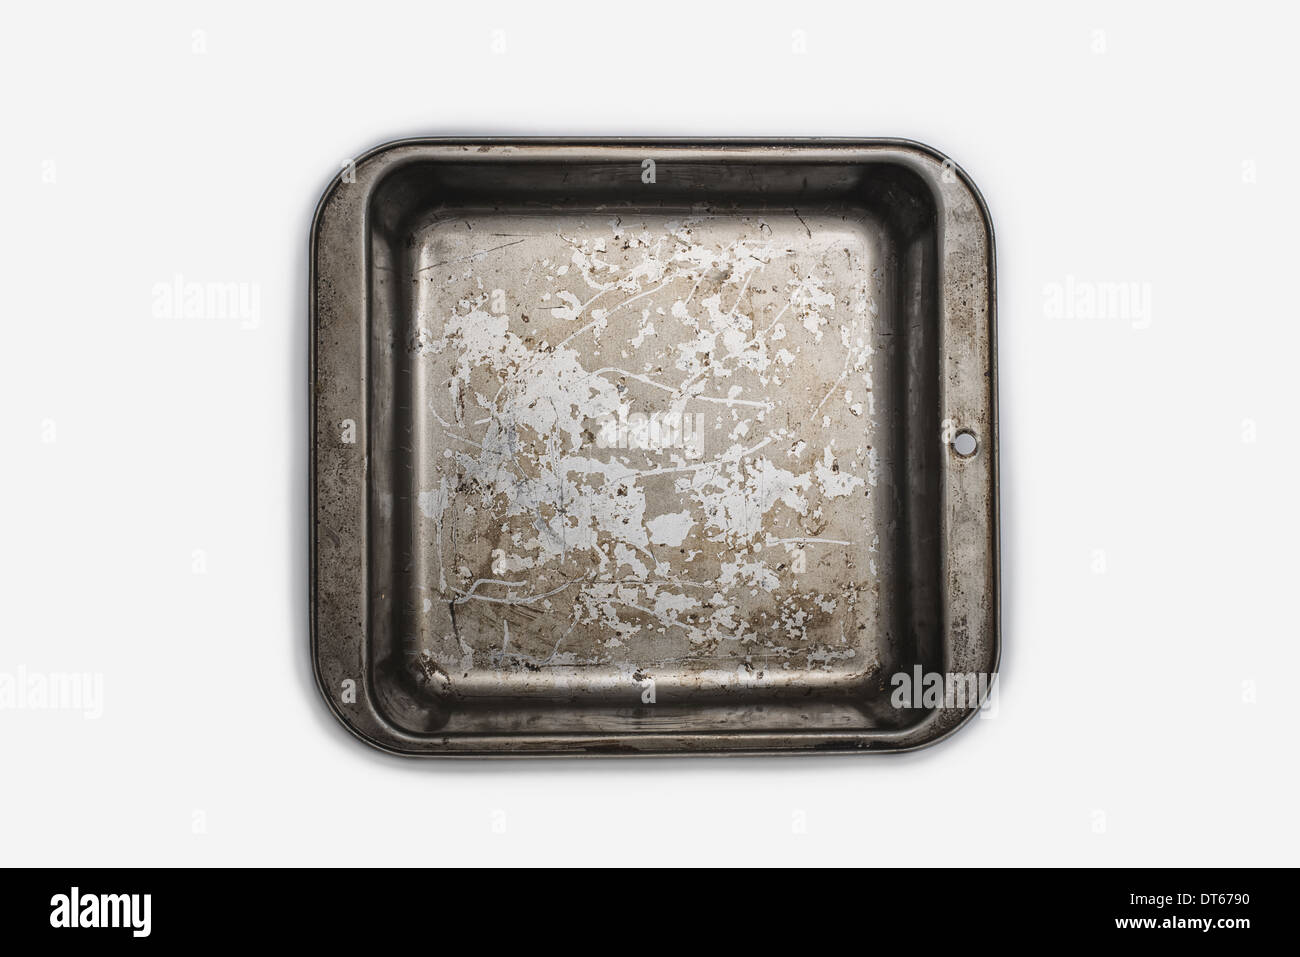 A well used, seasoned baking tray. Cookware. A square baking cake tin 9 inches square. Pan. - Stock Image